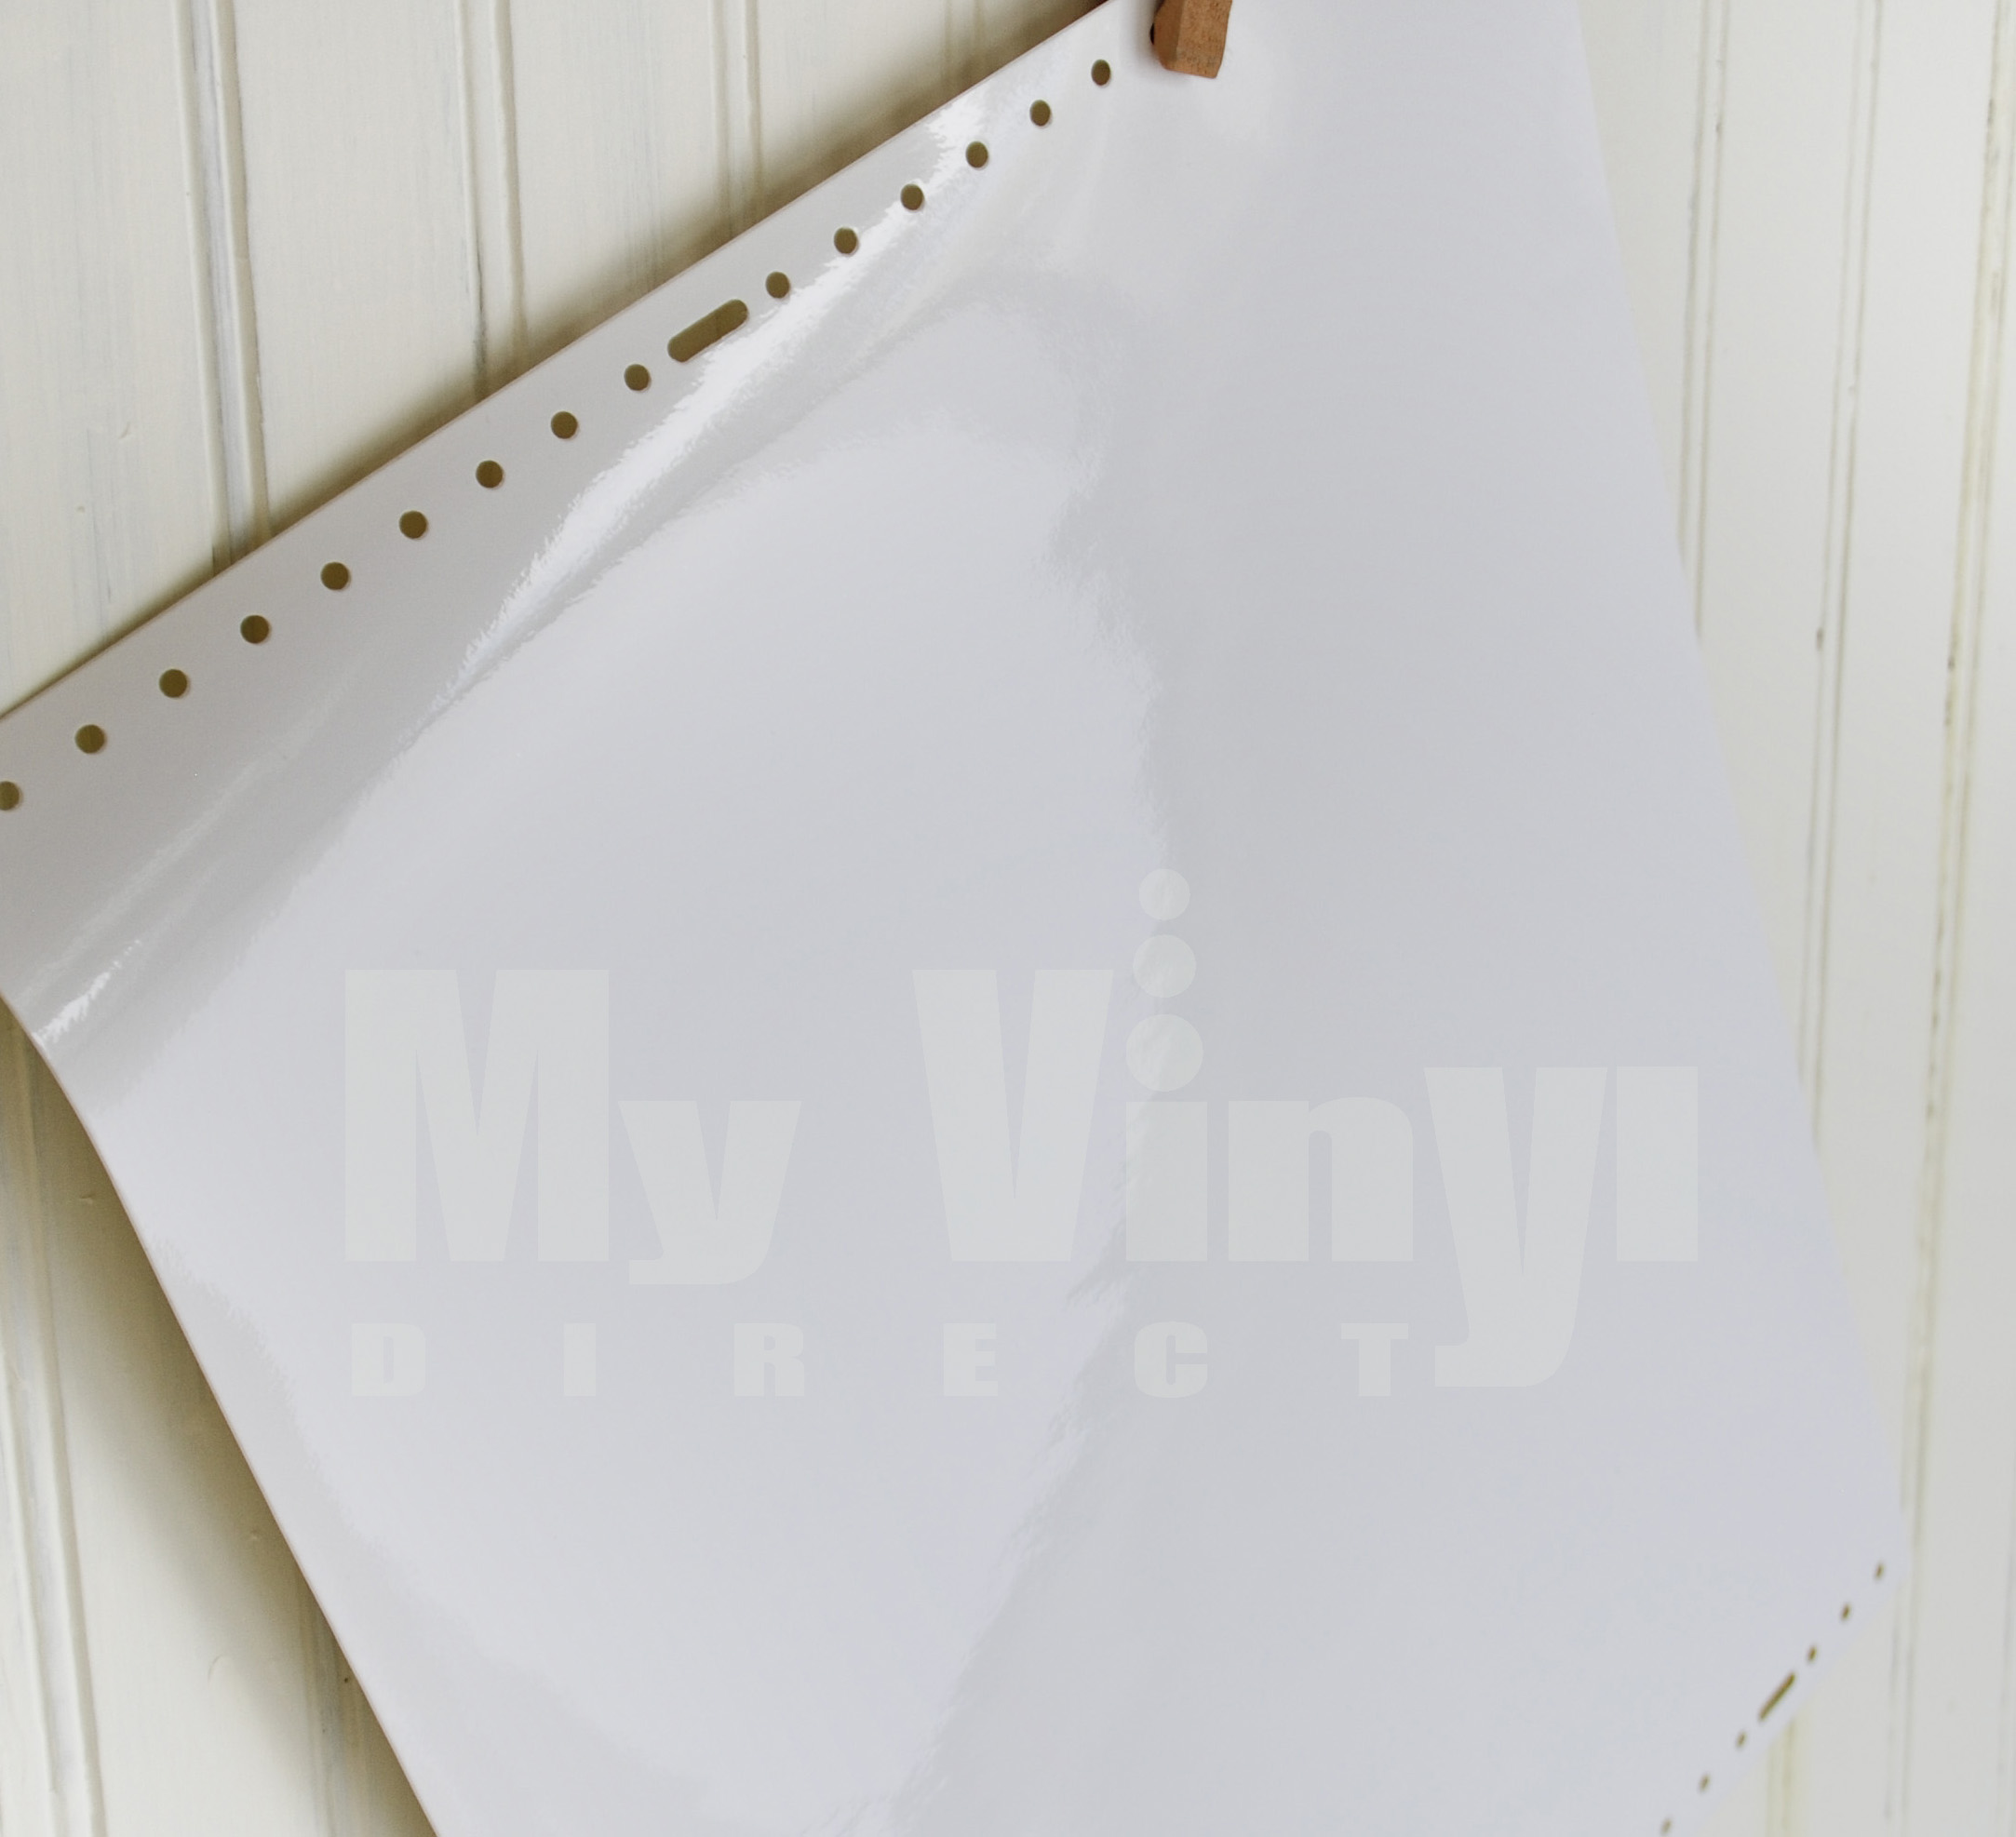 Iron On Siser Easyweed Vinyl Sheets T Shirt Vinyl Heat Transfer Wallpaper